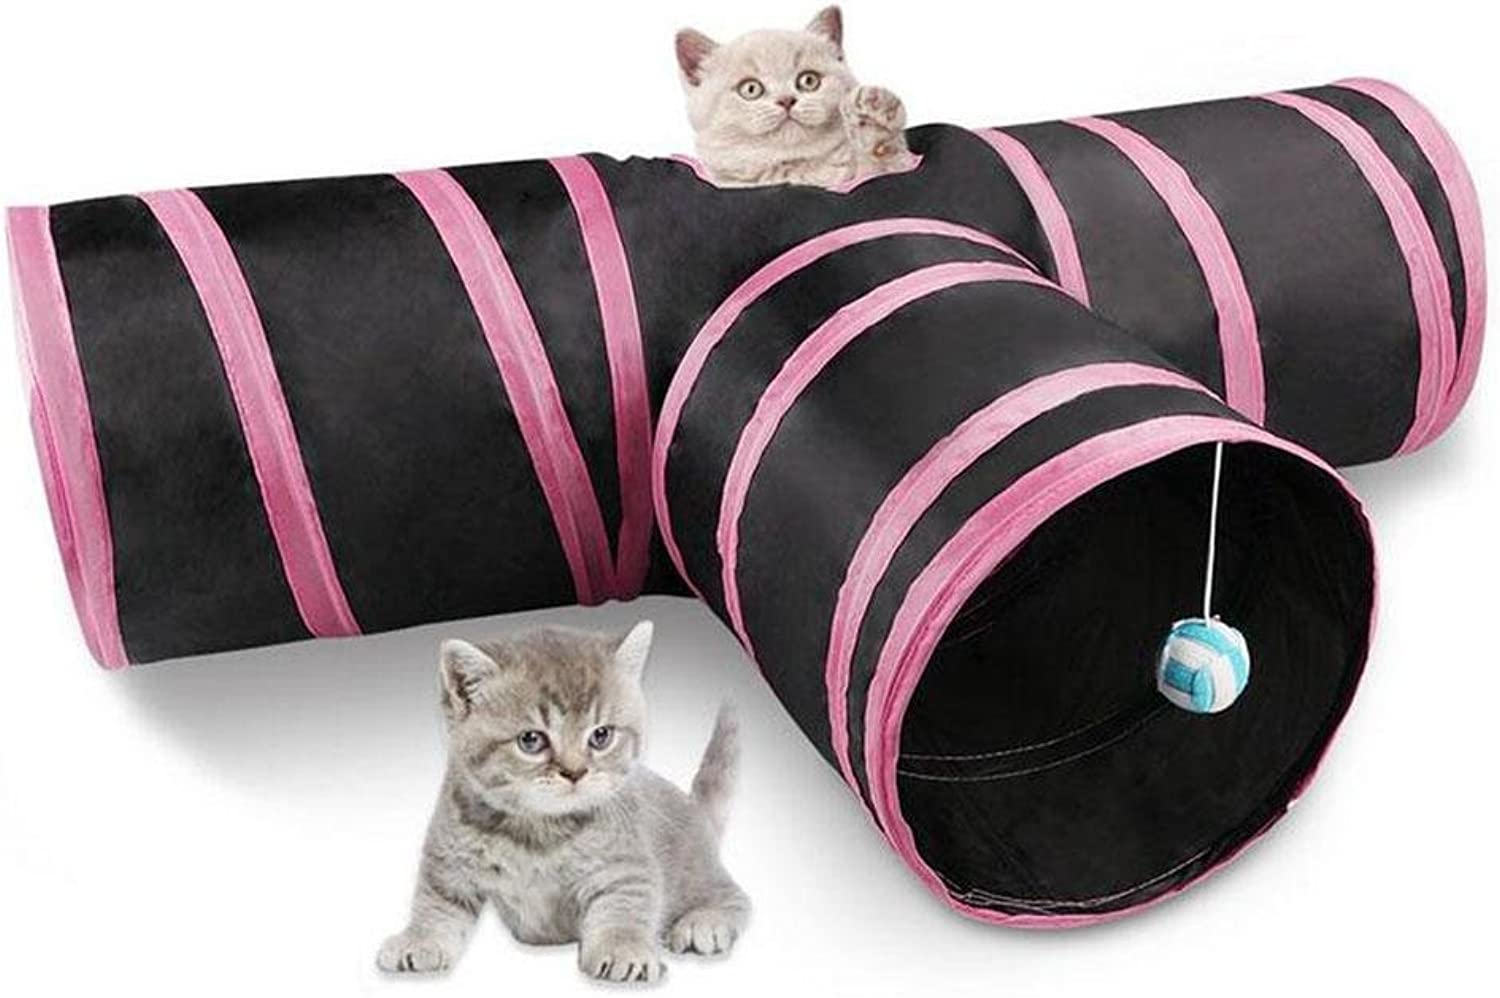 Cat Tunnel Toy,3 Way Collapsible Pet Cat Play Tunnel with Ringing Ball,Spacious Tube Fun for Cat Puppy Kitten Pink and bluee, Powder